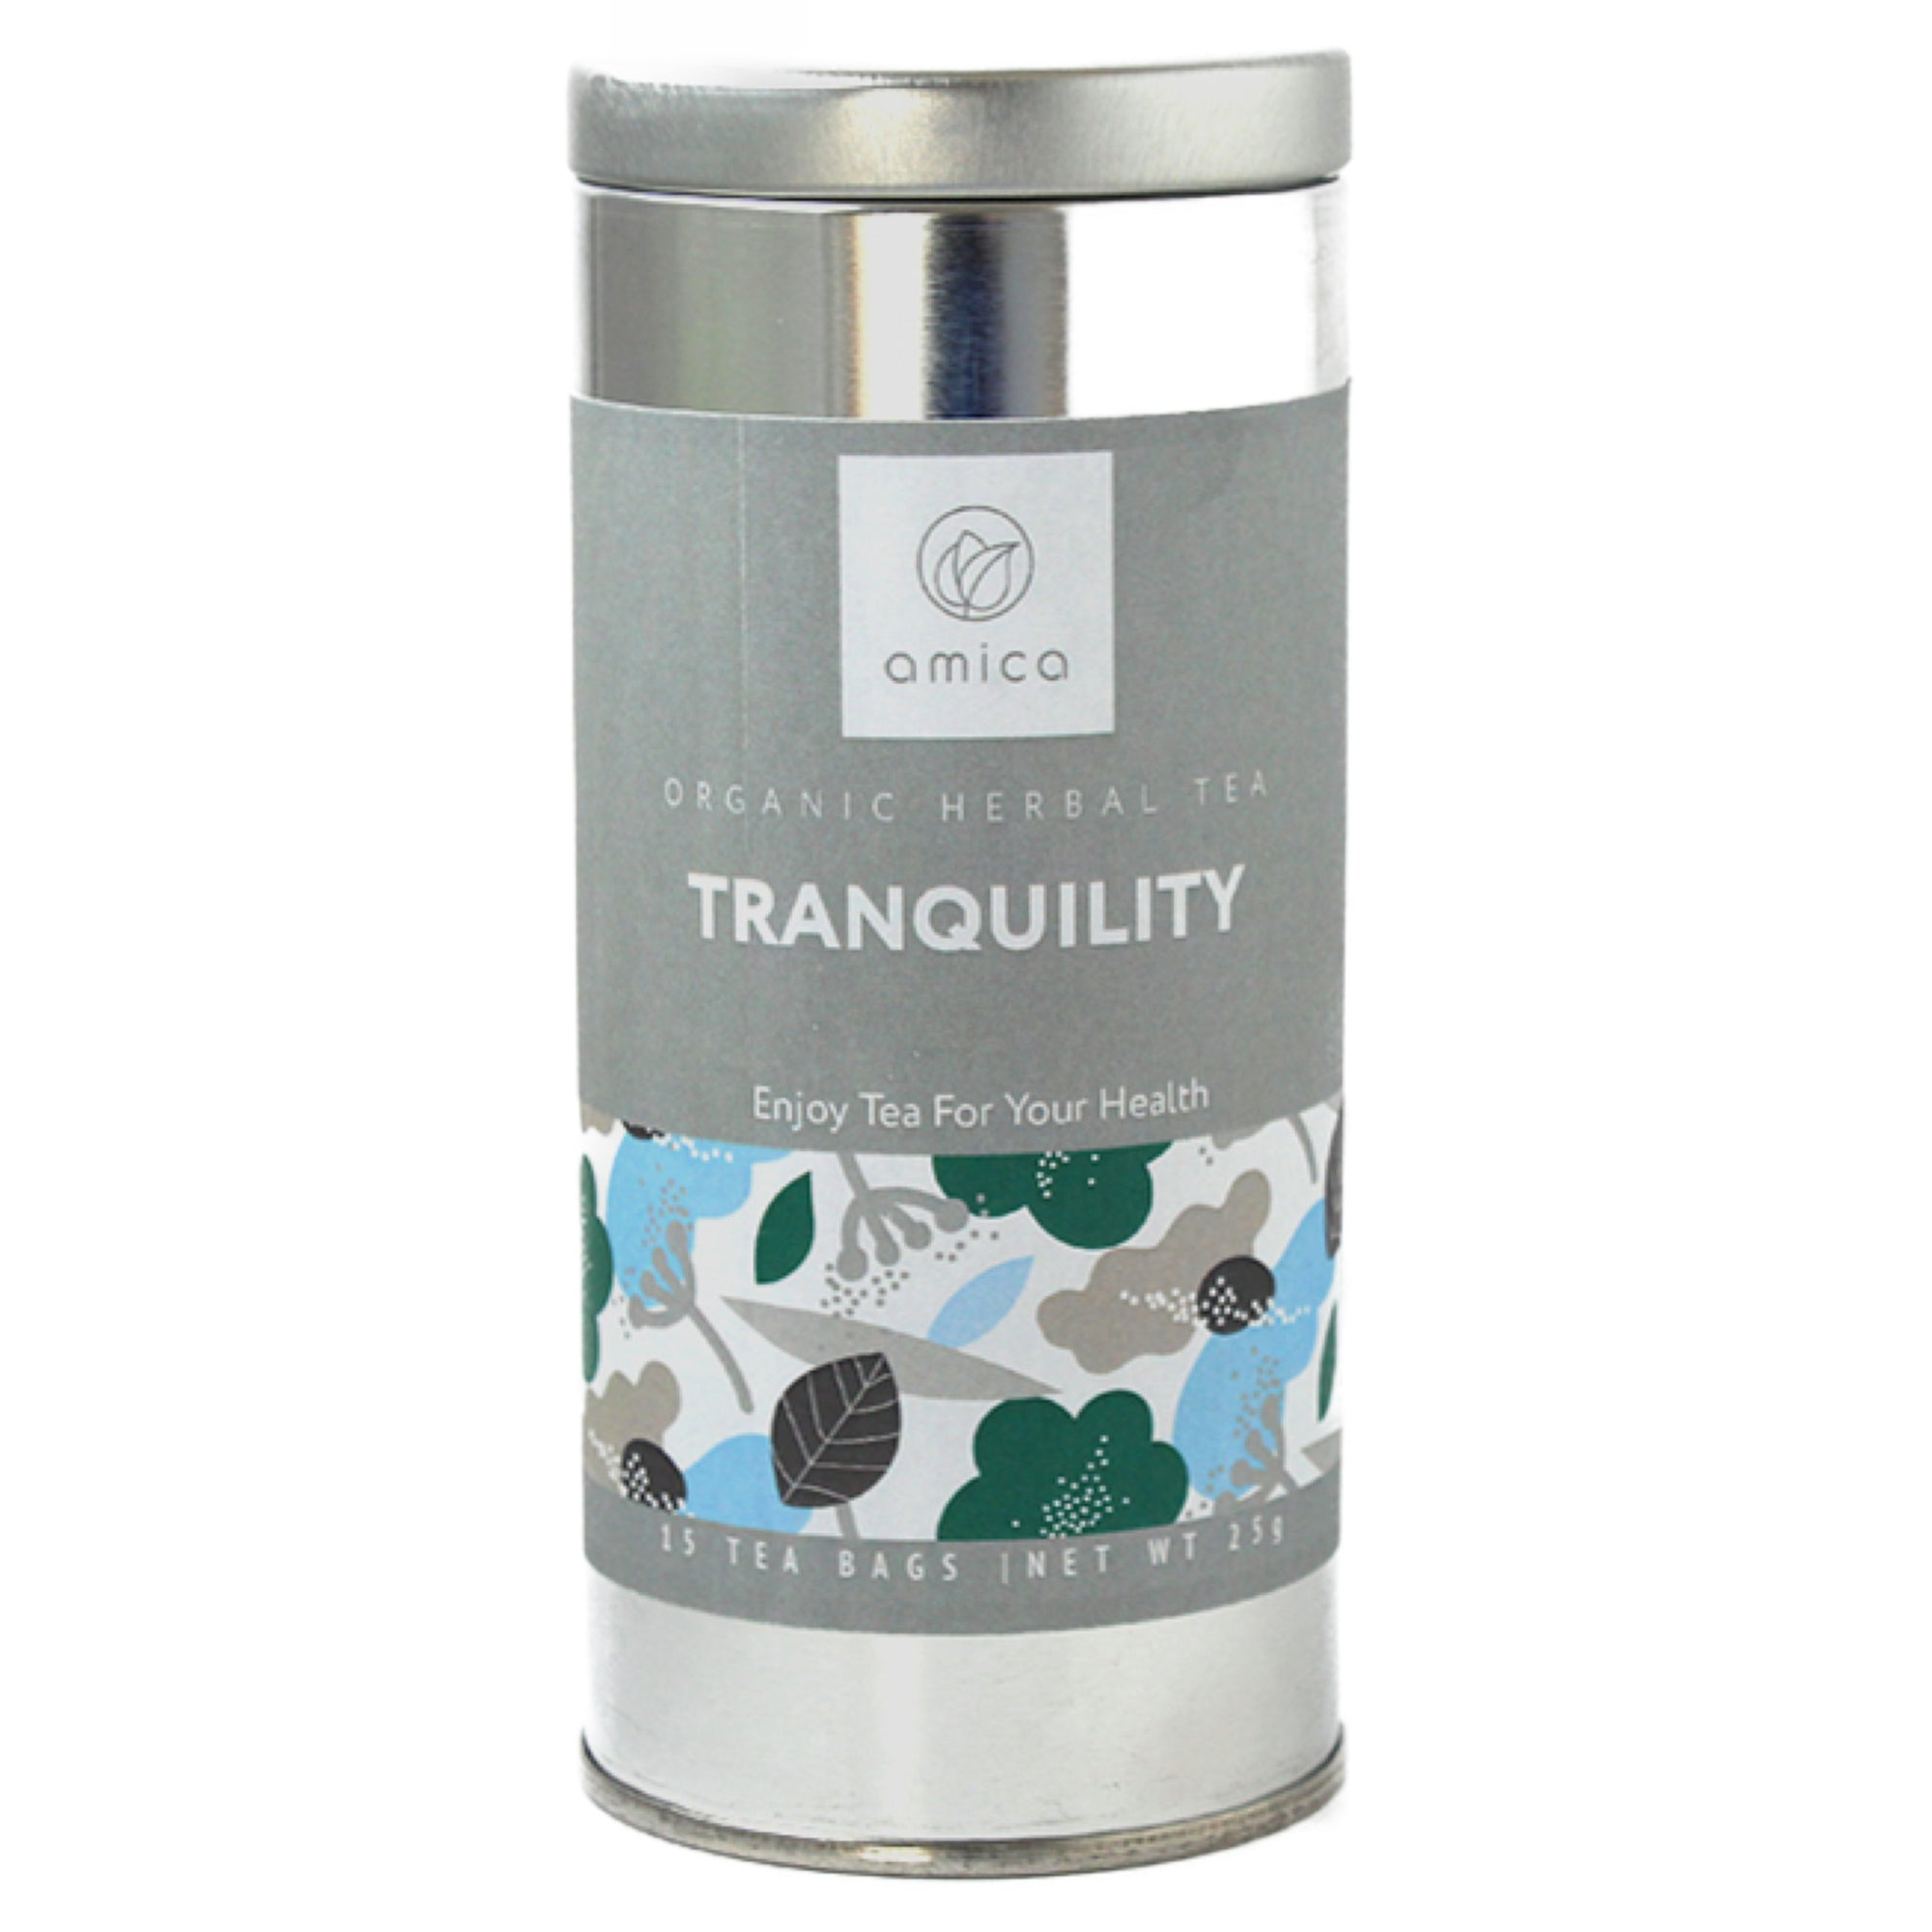 Tranquility Tea